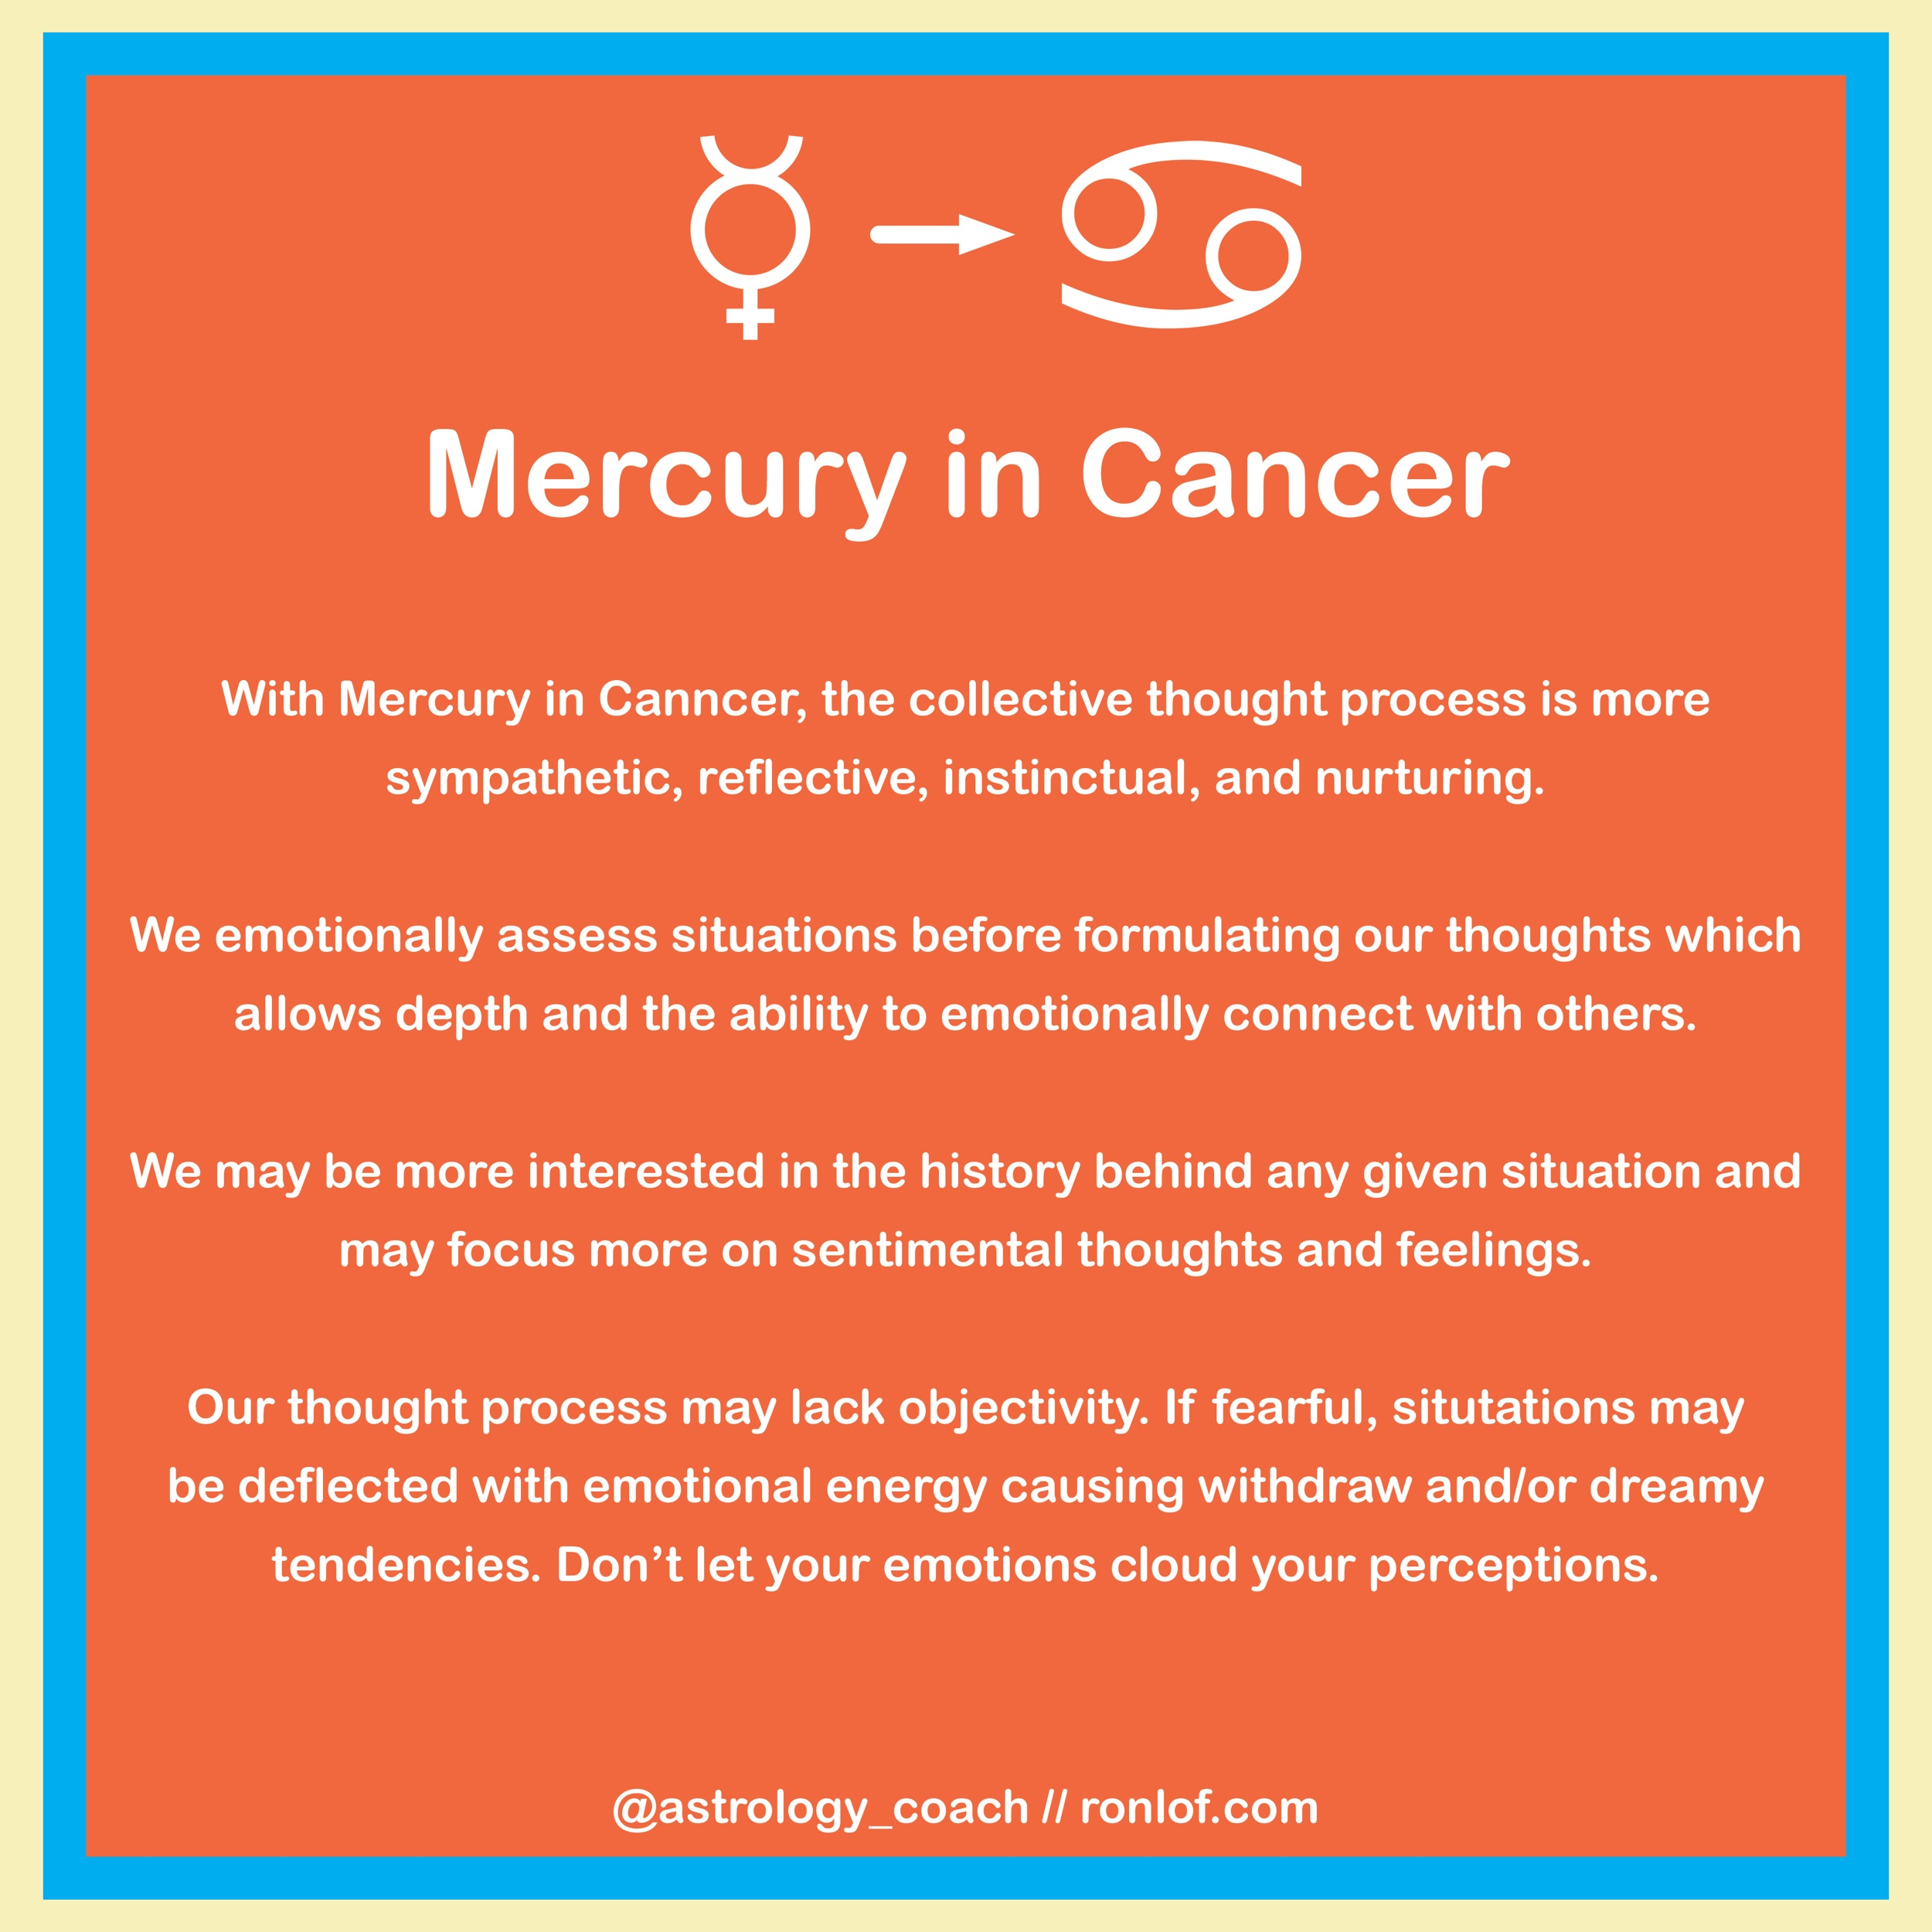 mercury_cancer3.jpeg